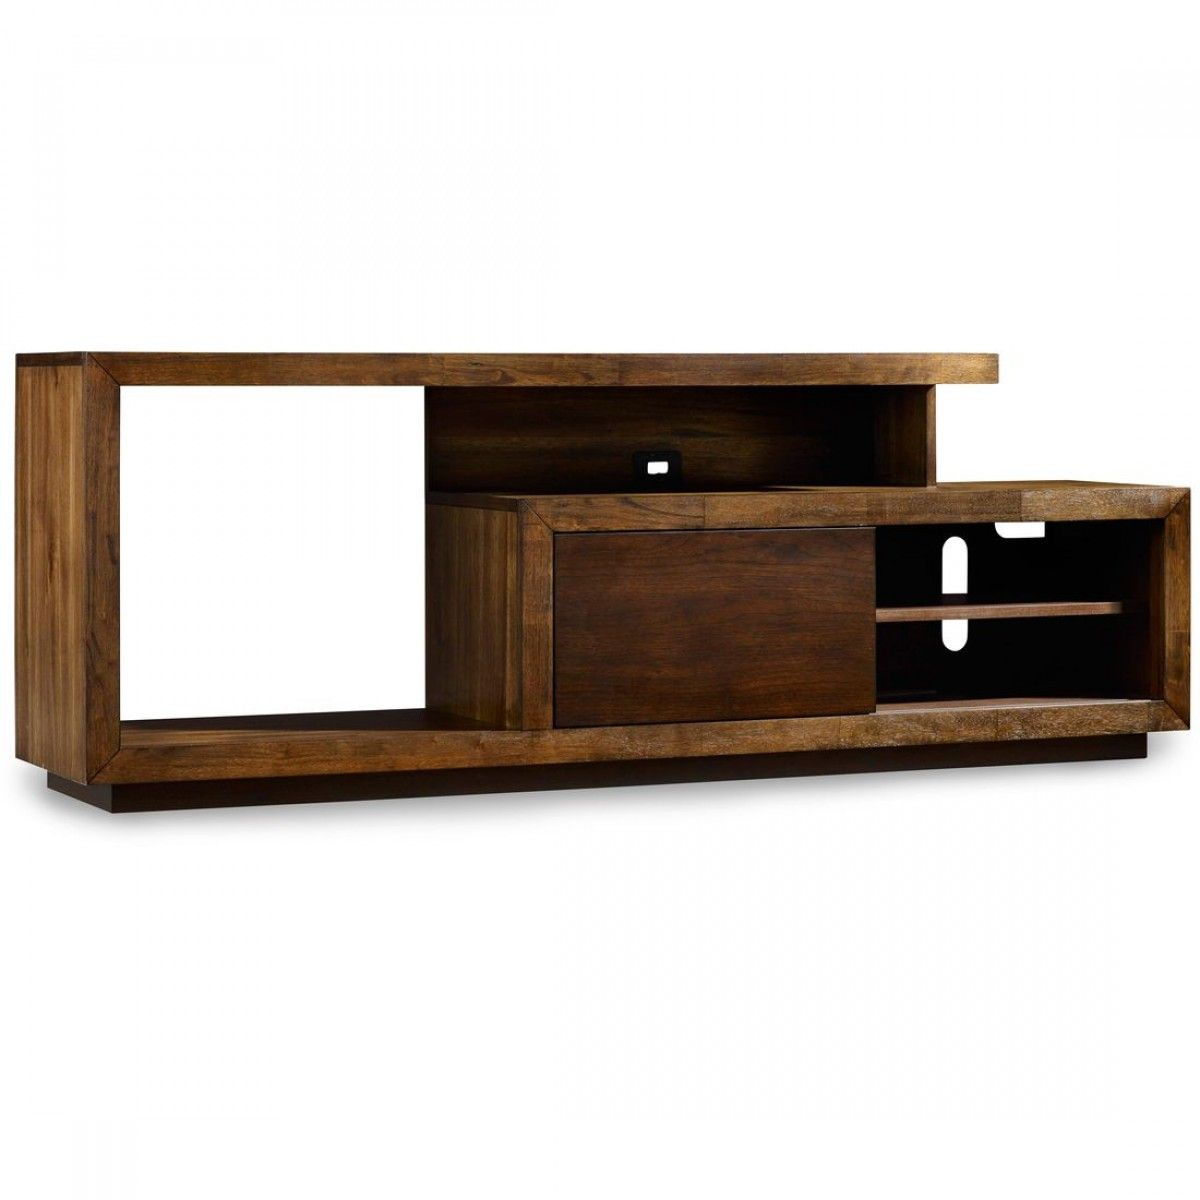 Hooker furniture studio h entertainment console new apartment